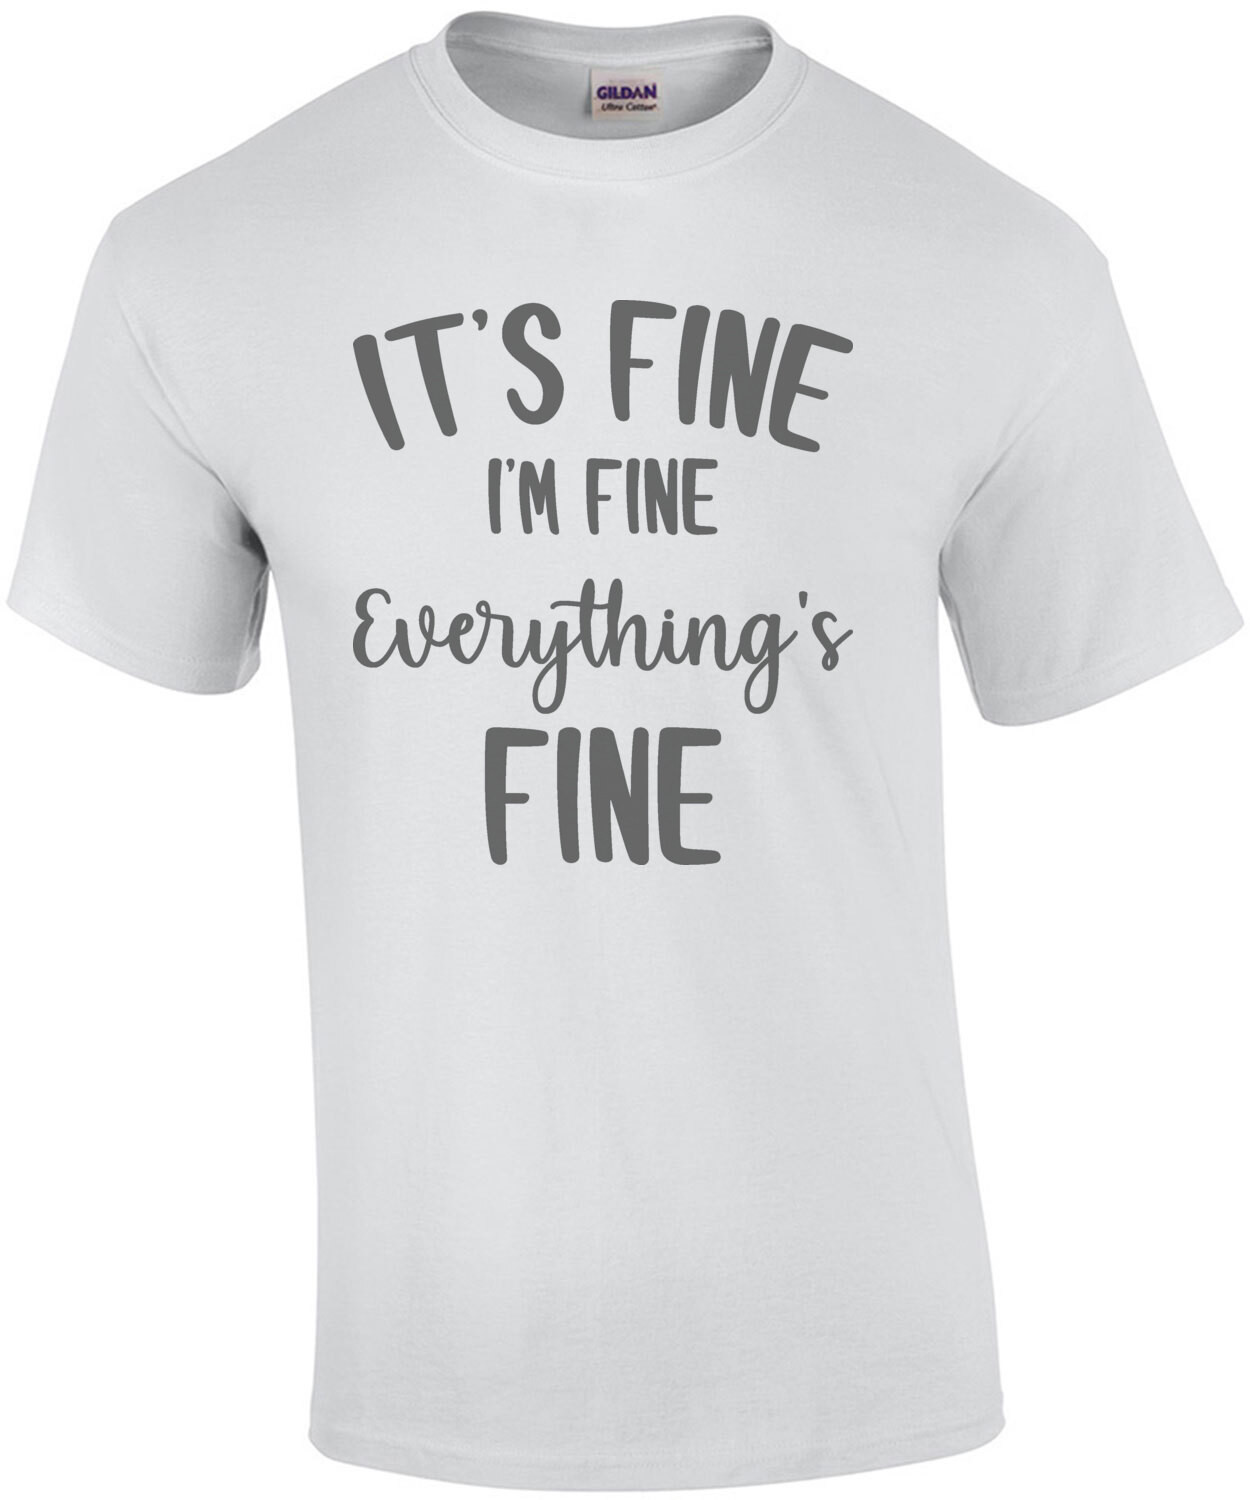 It's fine. I'm fine. Everything's fine - funny t-shirt